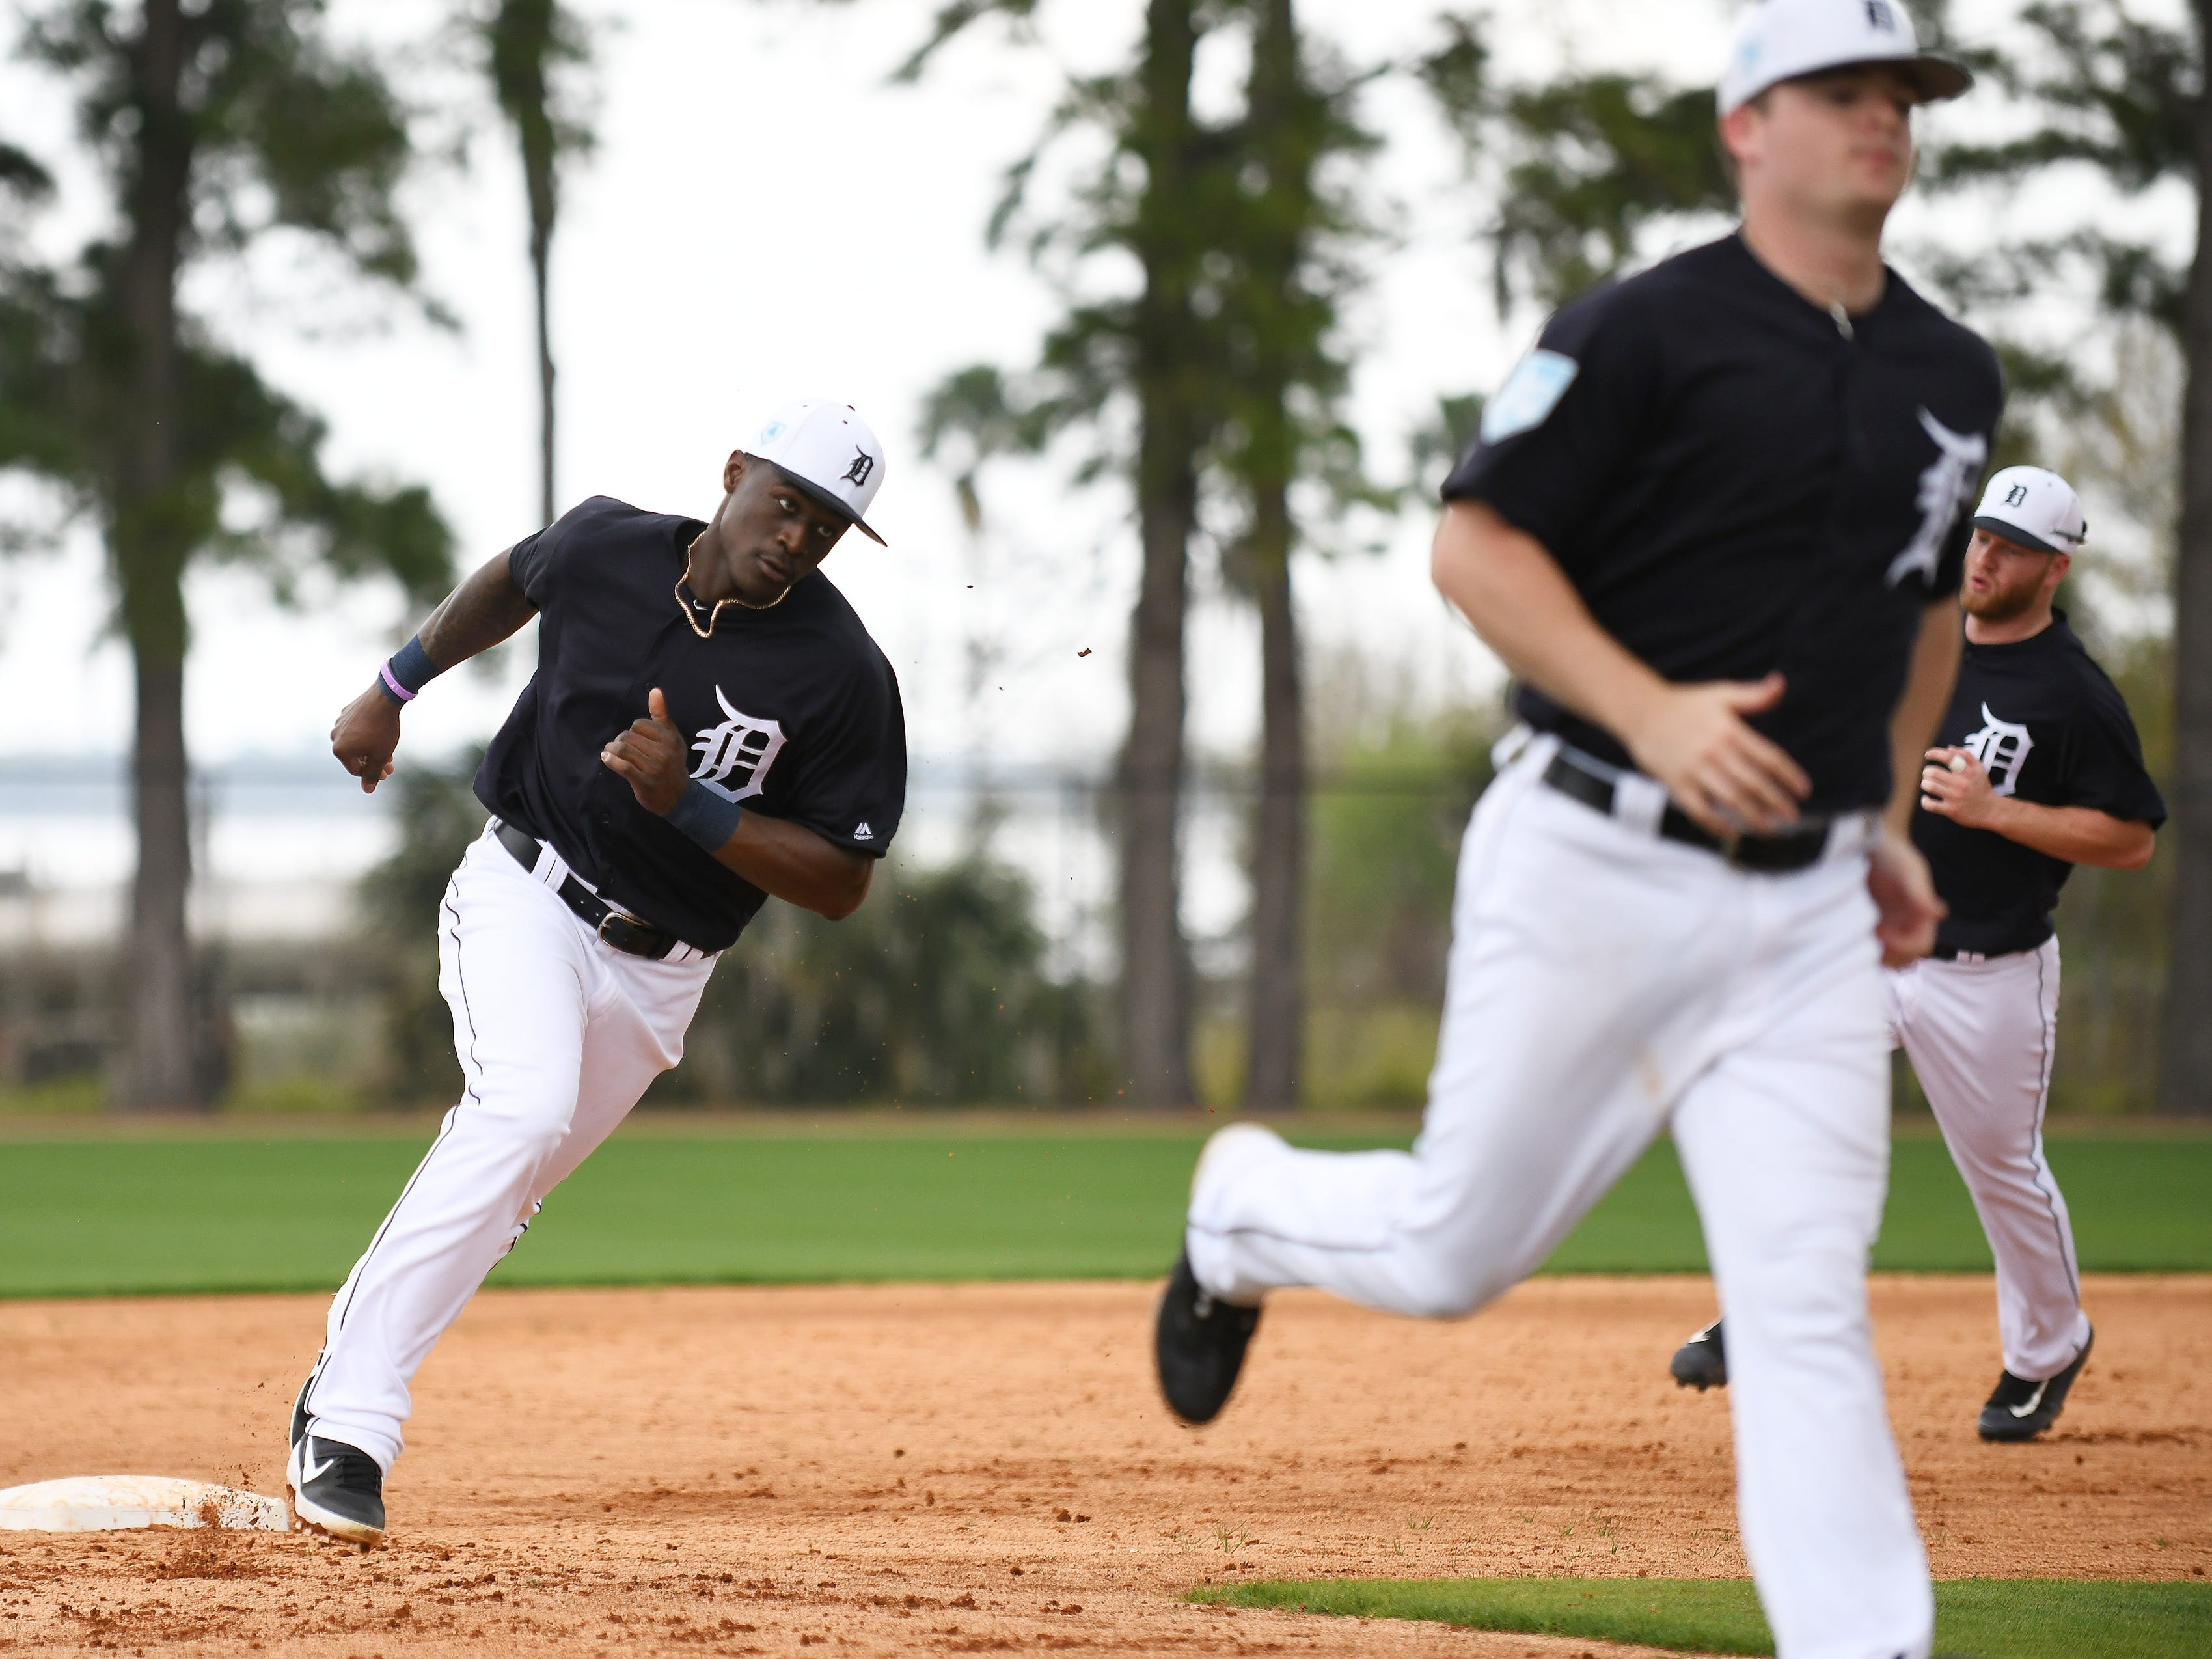 Tigers prospect and non-roster invitee Daz Cameron, left, runs base running drills.